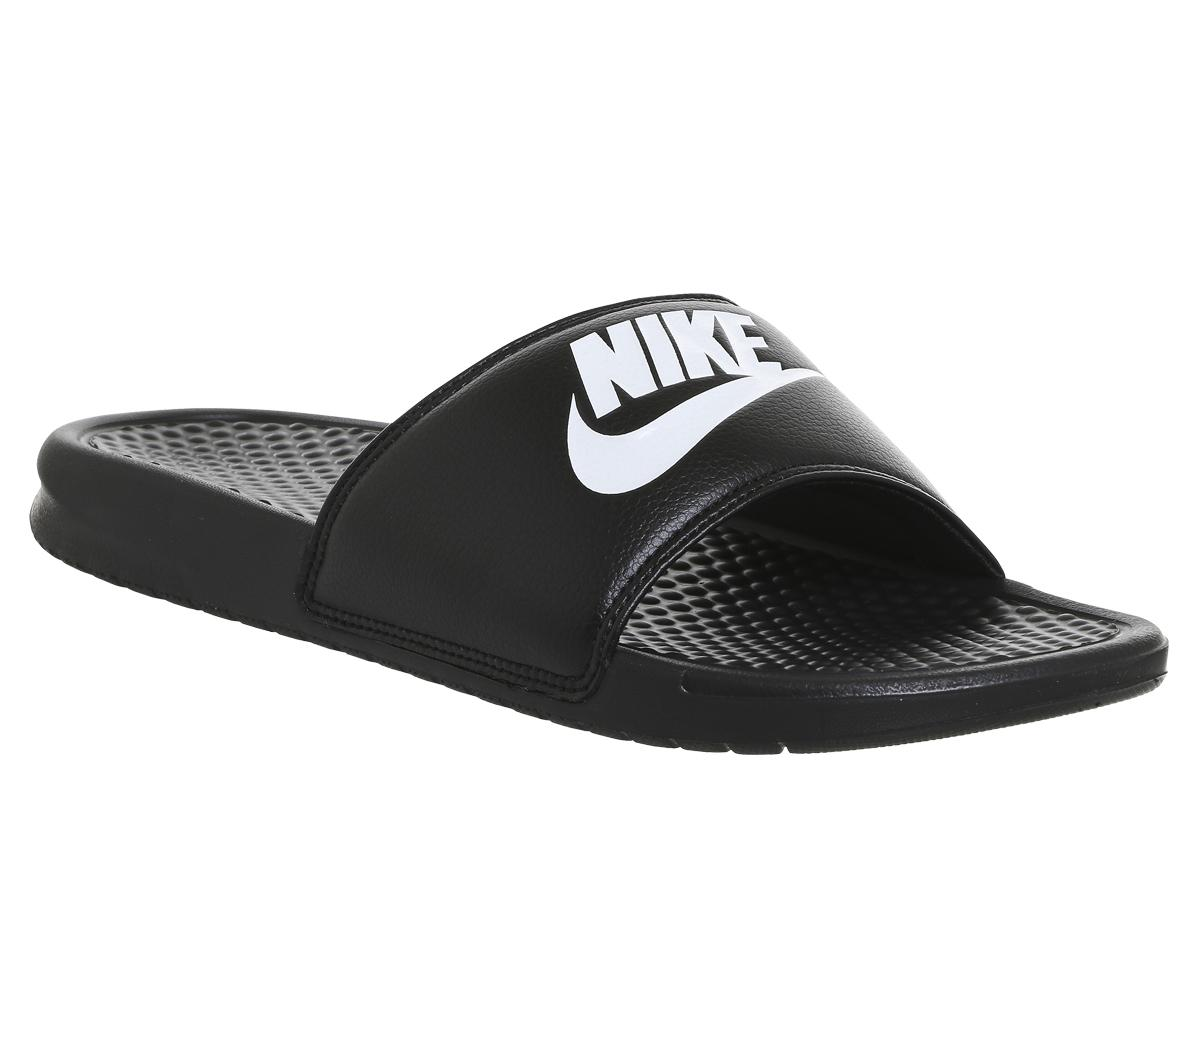 show me nike sandals